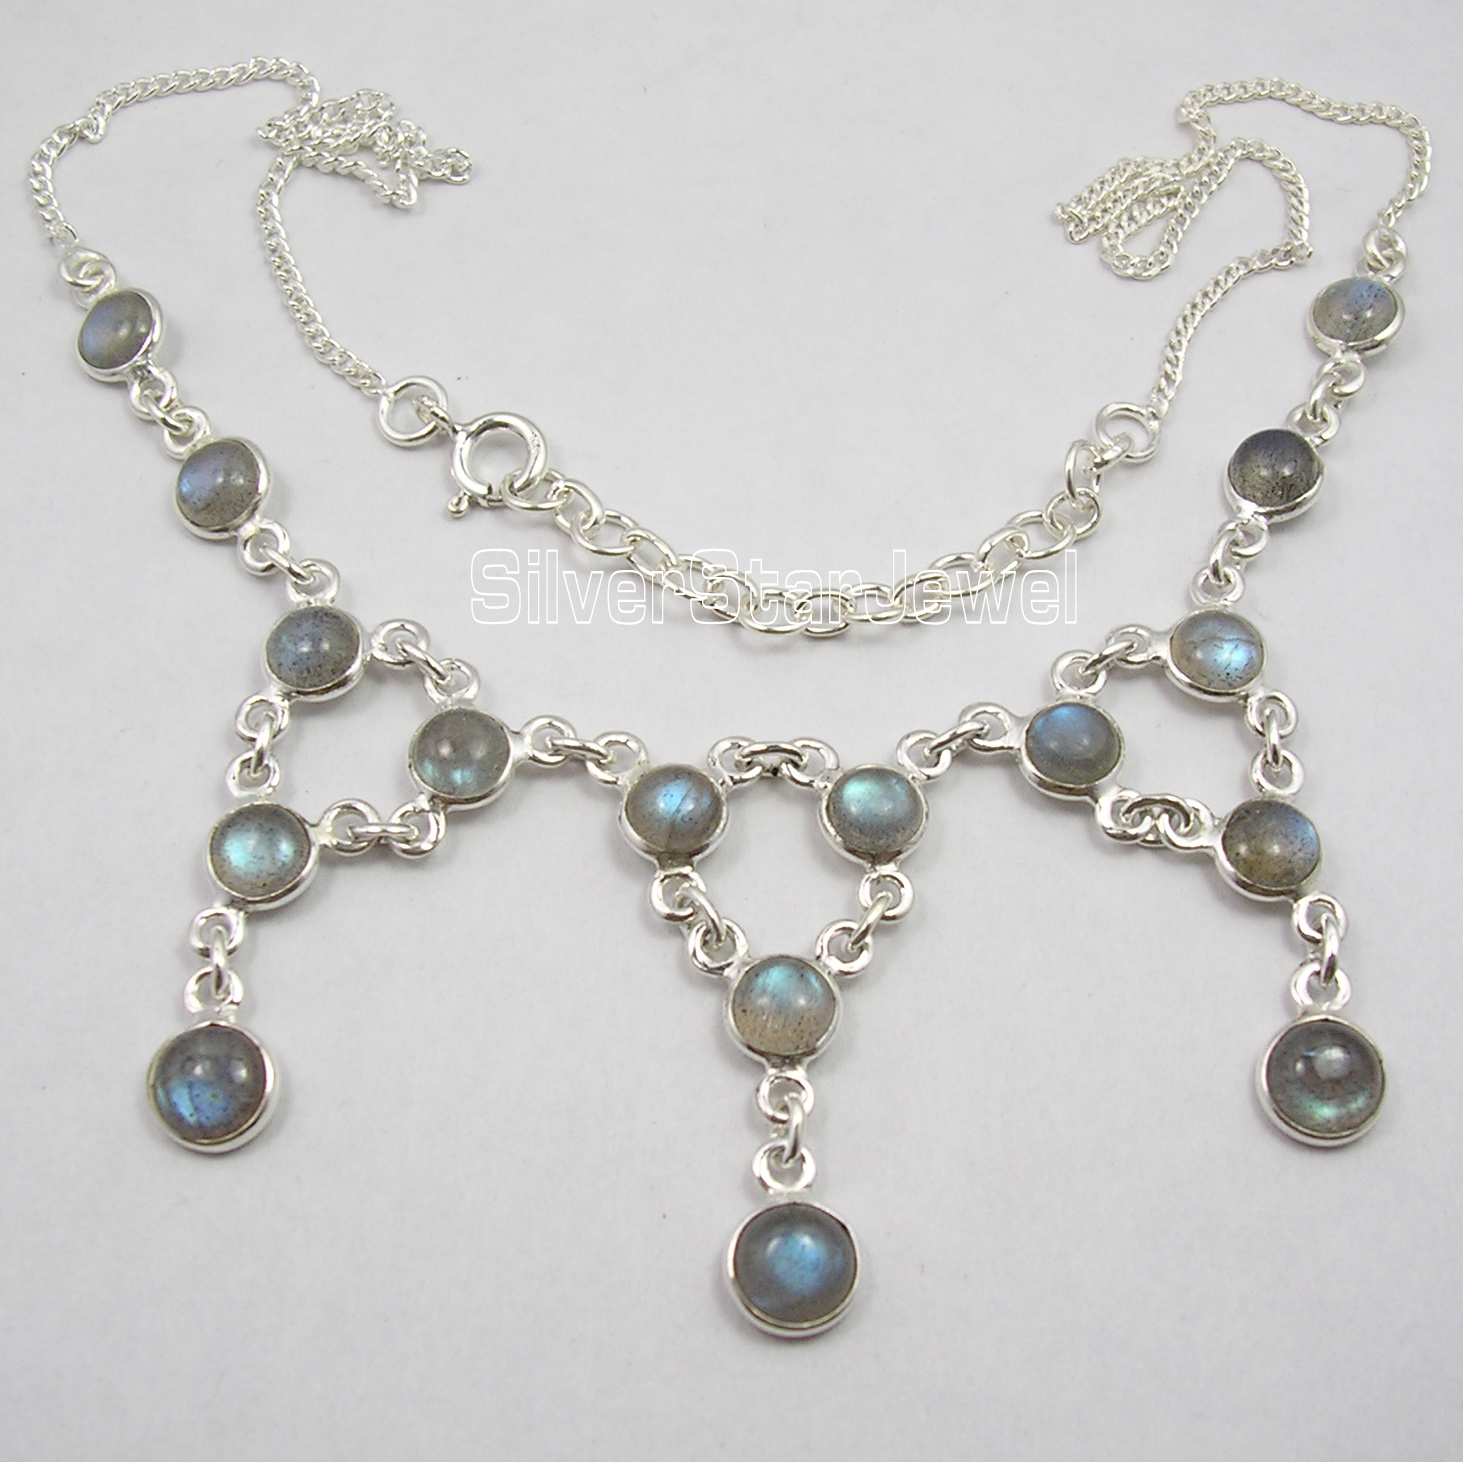 Chanti International Pure Silver BLUE FLASH LABRADORITE Beautiful LARGE MADE IN INDIA Necklace scavengers in india page 1